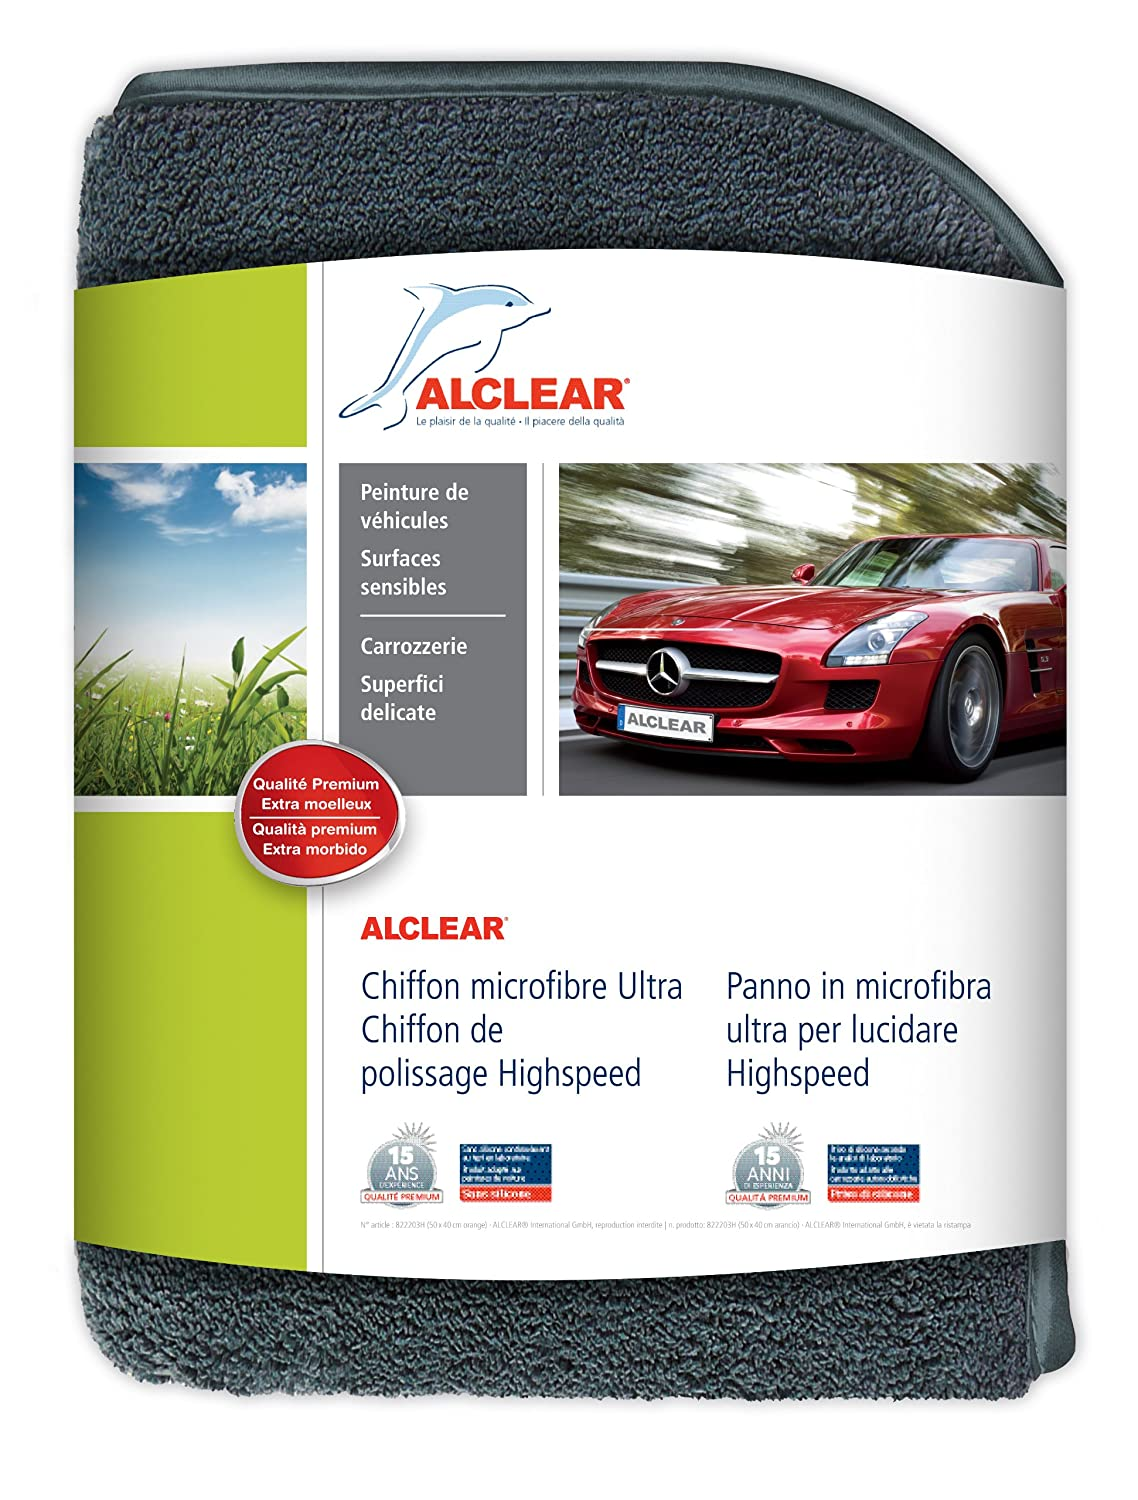 ALCLEAR 822203H - Panno in microfibra anti-ologrammi Highspeed per lucidatura auto ALCLEAR International GmbH